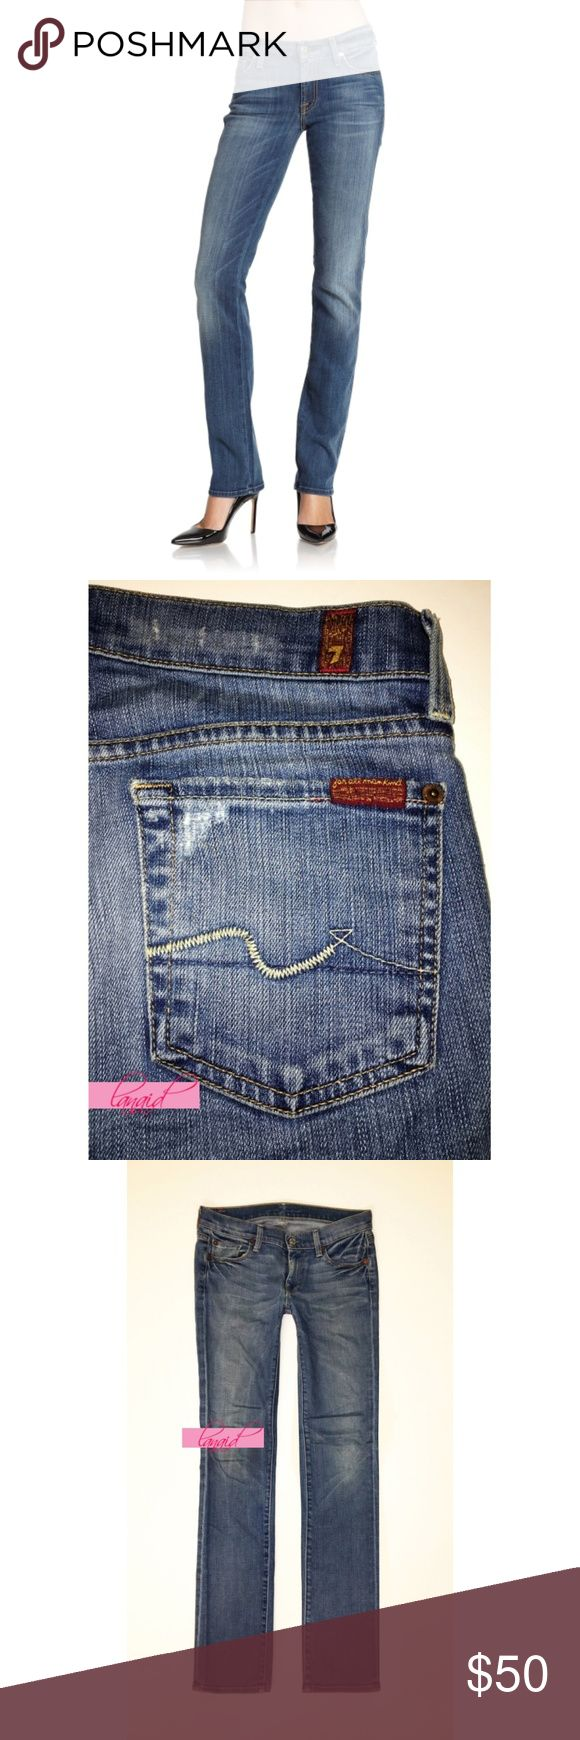 """7FAM Straight Leg New Amsterdam Distressed Jean 26 NO OFFERS. PRICE IS FIRM AND NON-NEGOTIABLE. NO TRADES OR HOLDS. AUTHENTIC 7 For All Mankind """"Straight"""" jeans in New Amsterdam, size 26. Signature 7FAM squiggle on back pockets. Marked """"QC"""" on the inner pocket lining--this stands for """"Quantity Control,"""" 7 For All Mankind's way of labeling overstock. All distressing is intentional. Perfect staple for your closet. 7 For All Mankind Jeans Straight Leg"""